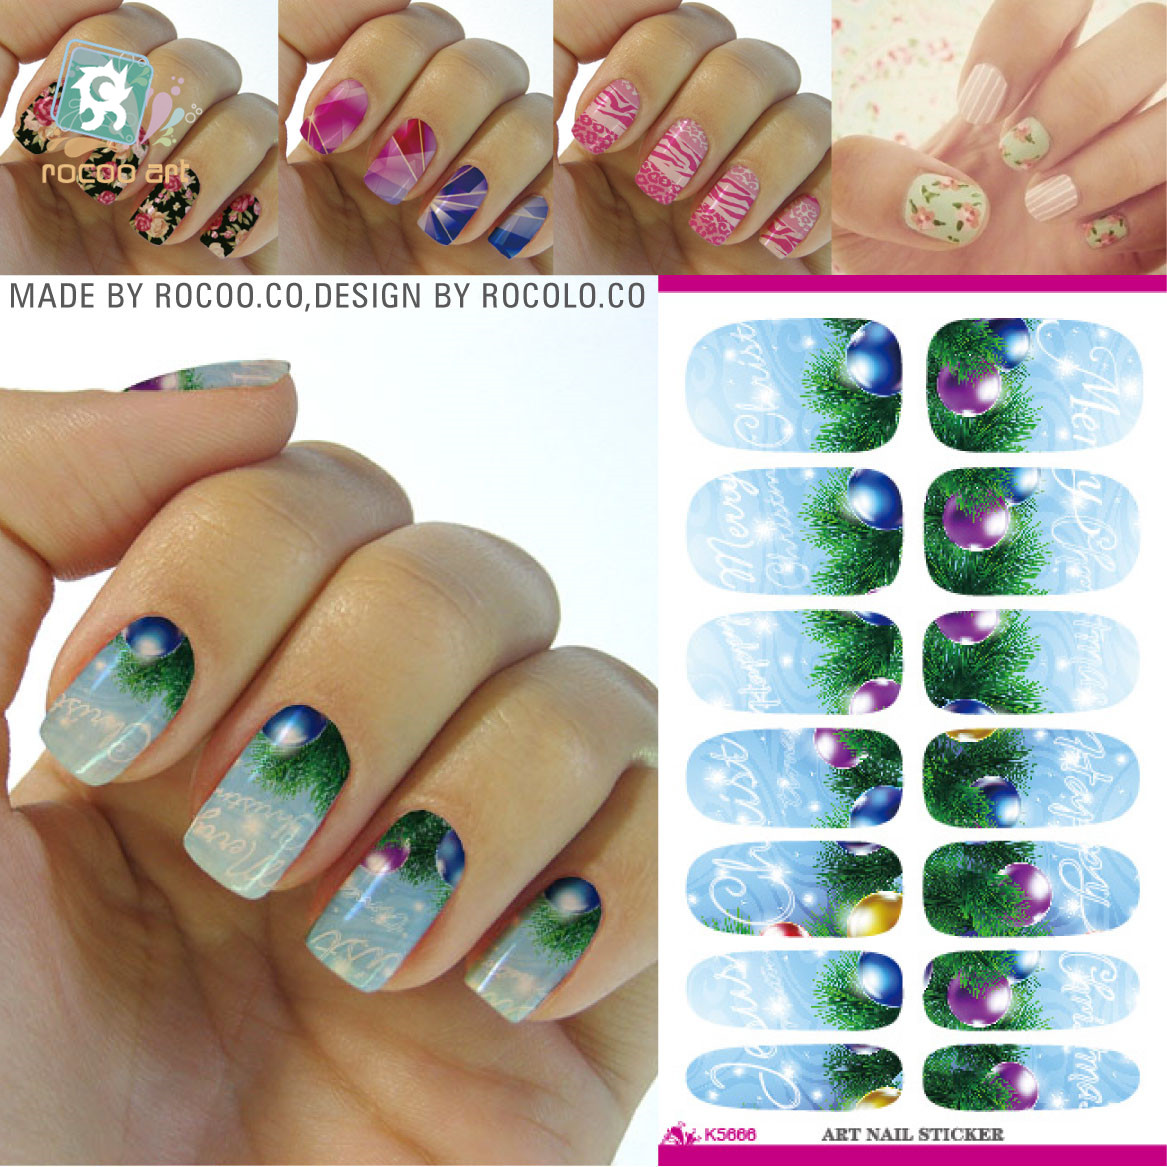 New 2016 Water Transfer Nail Foil Sticker Art Merry Christmas Water Drops Green Plants Gradient Nail Wraps Sticker Decals(China (Mainland))